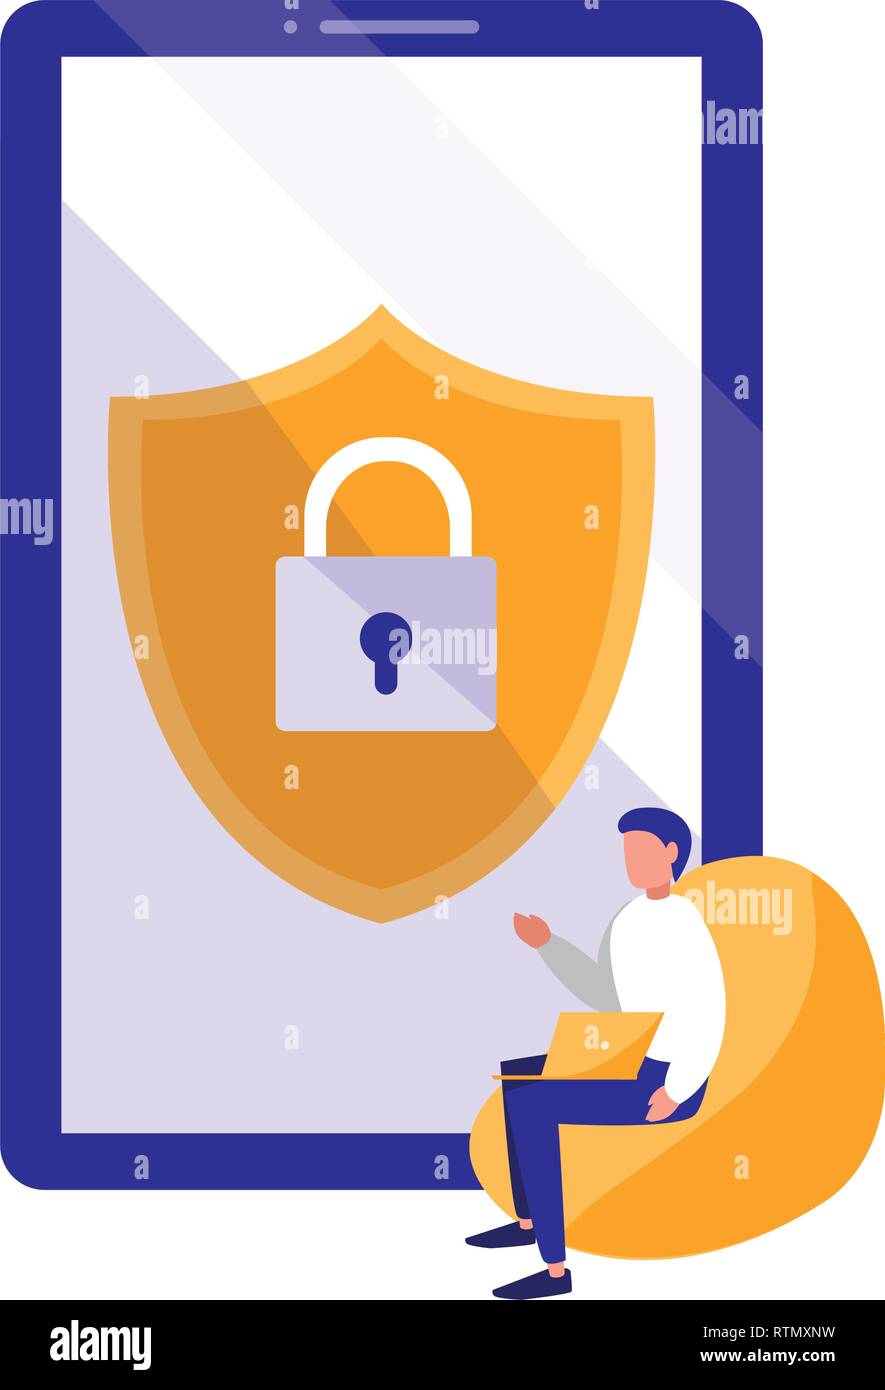 man using smartphone with shield and padlock vector illustration design - Stock Vector